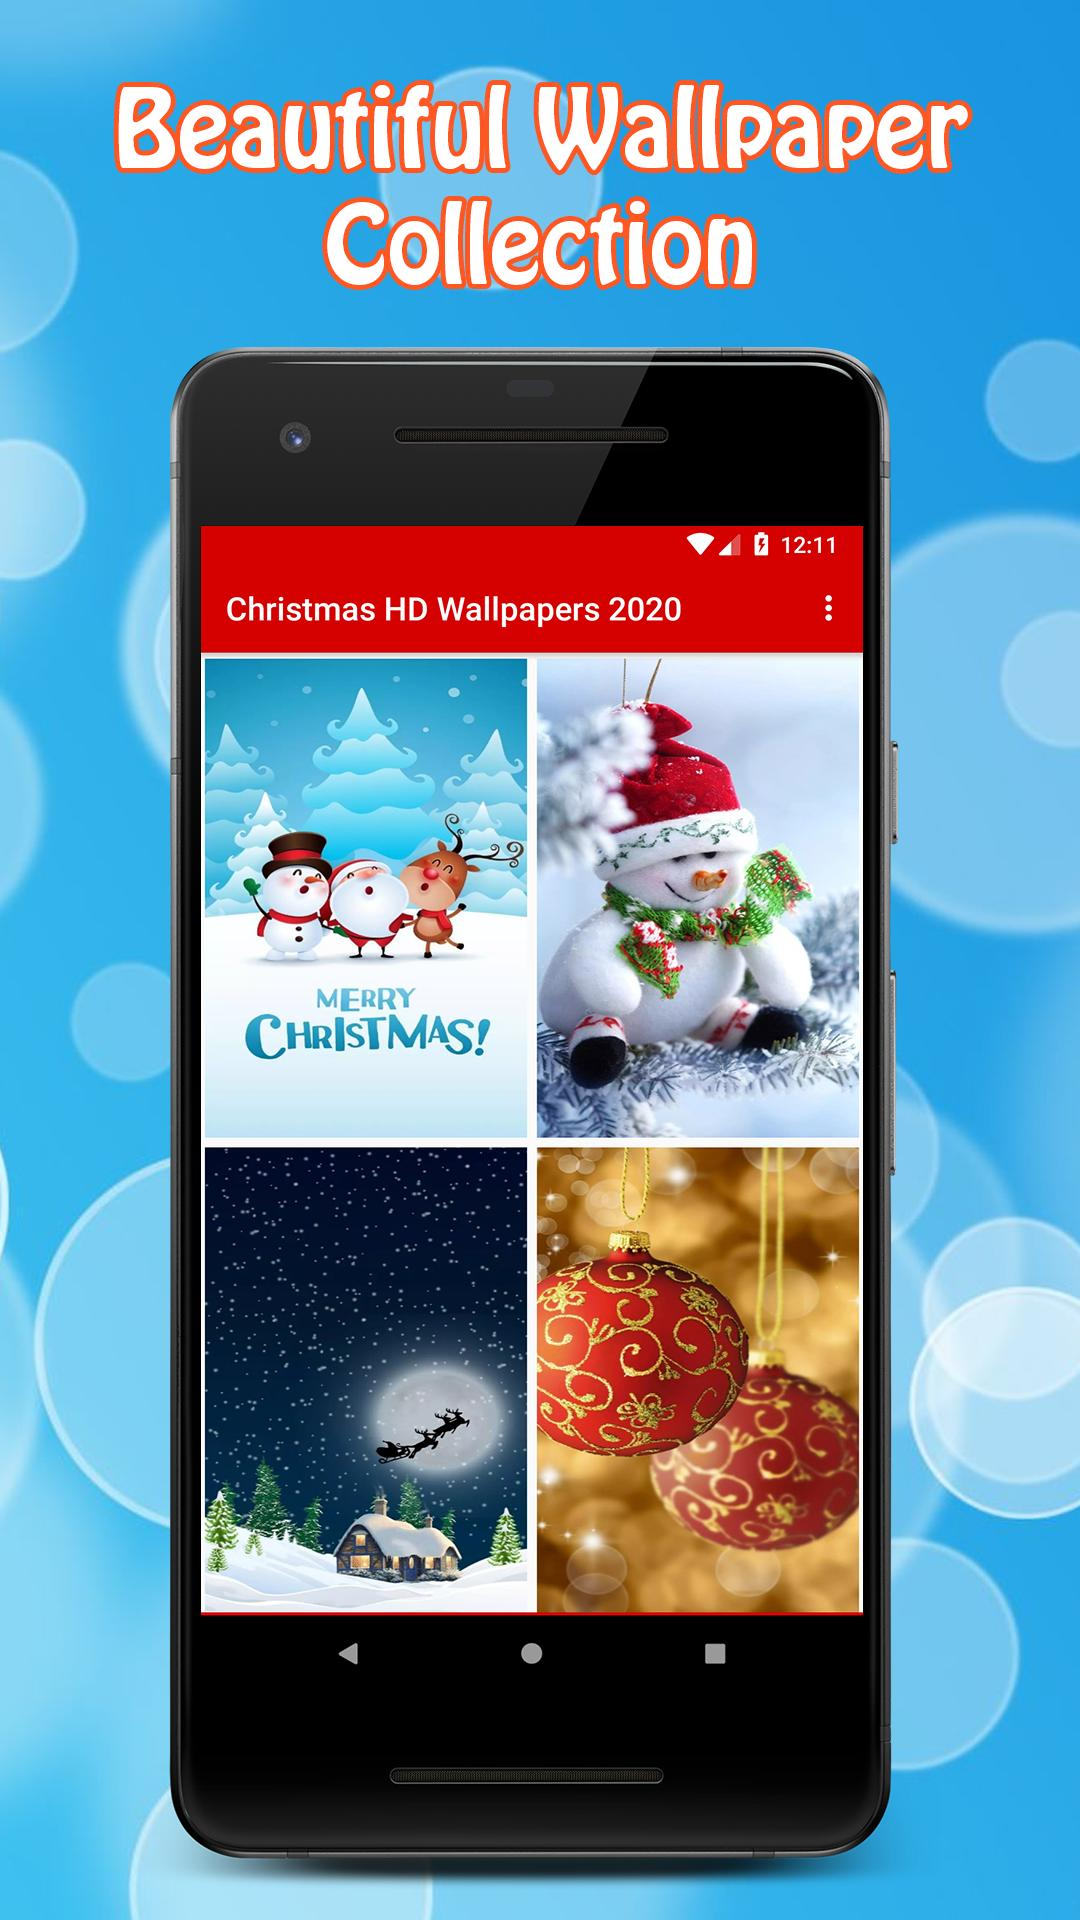 Christmas HD Wallpapers 2020 for Android   APK Download 1080x1920